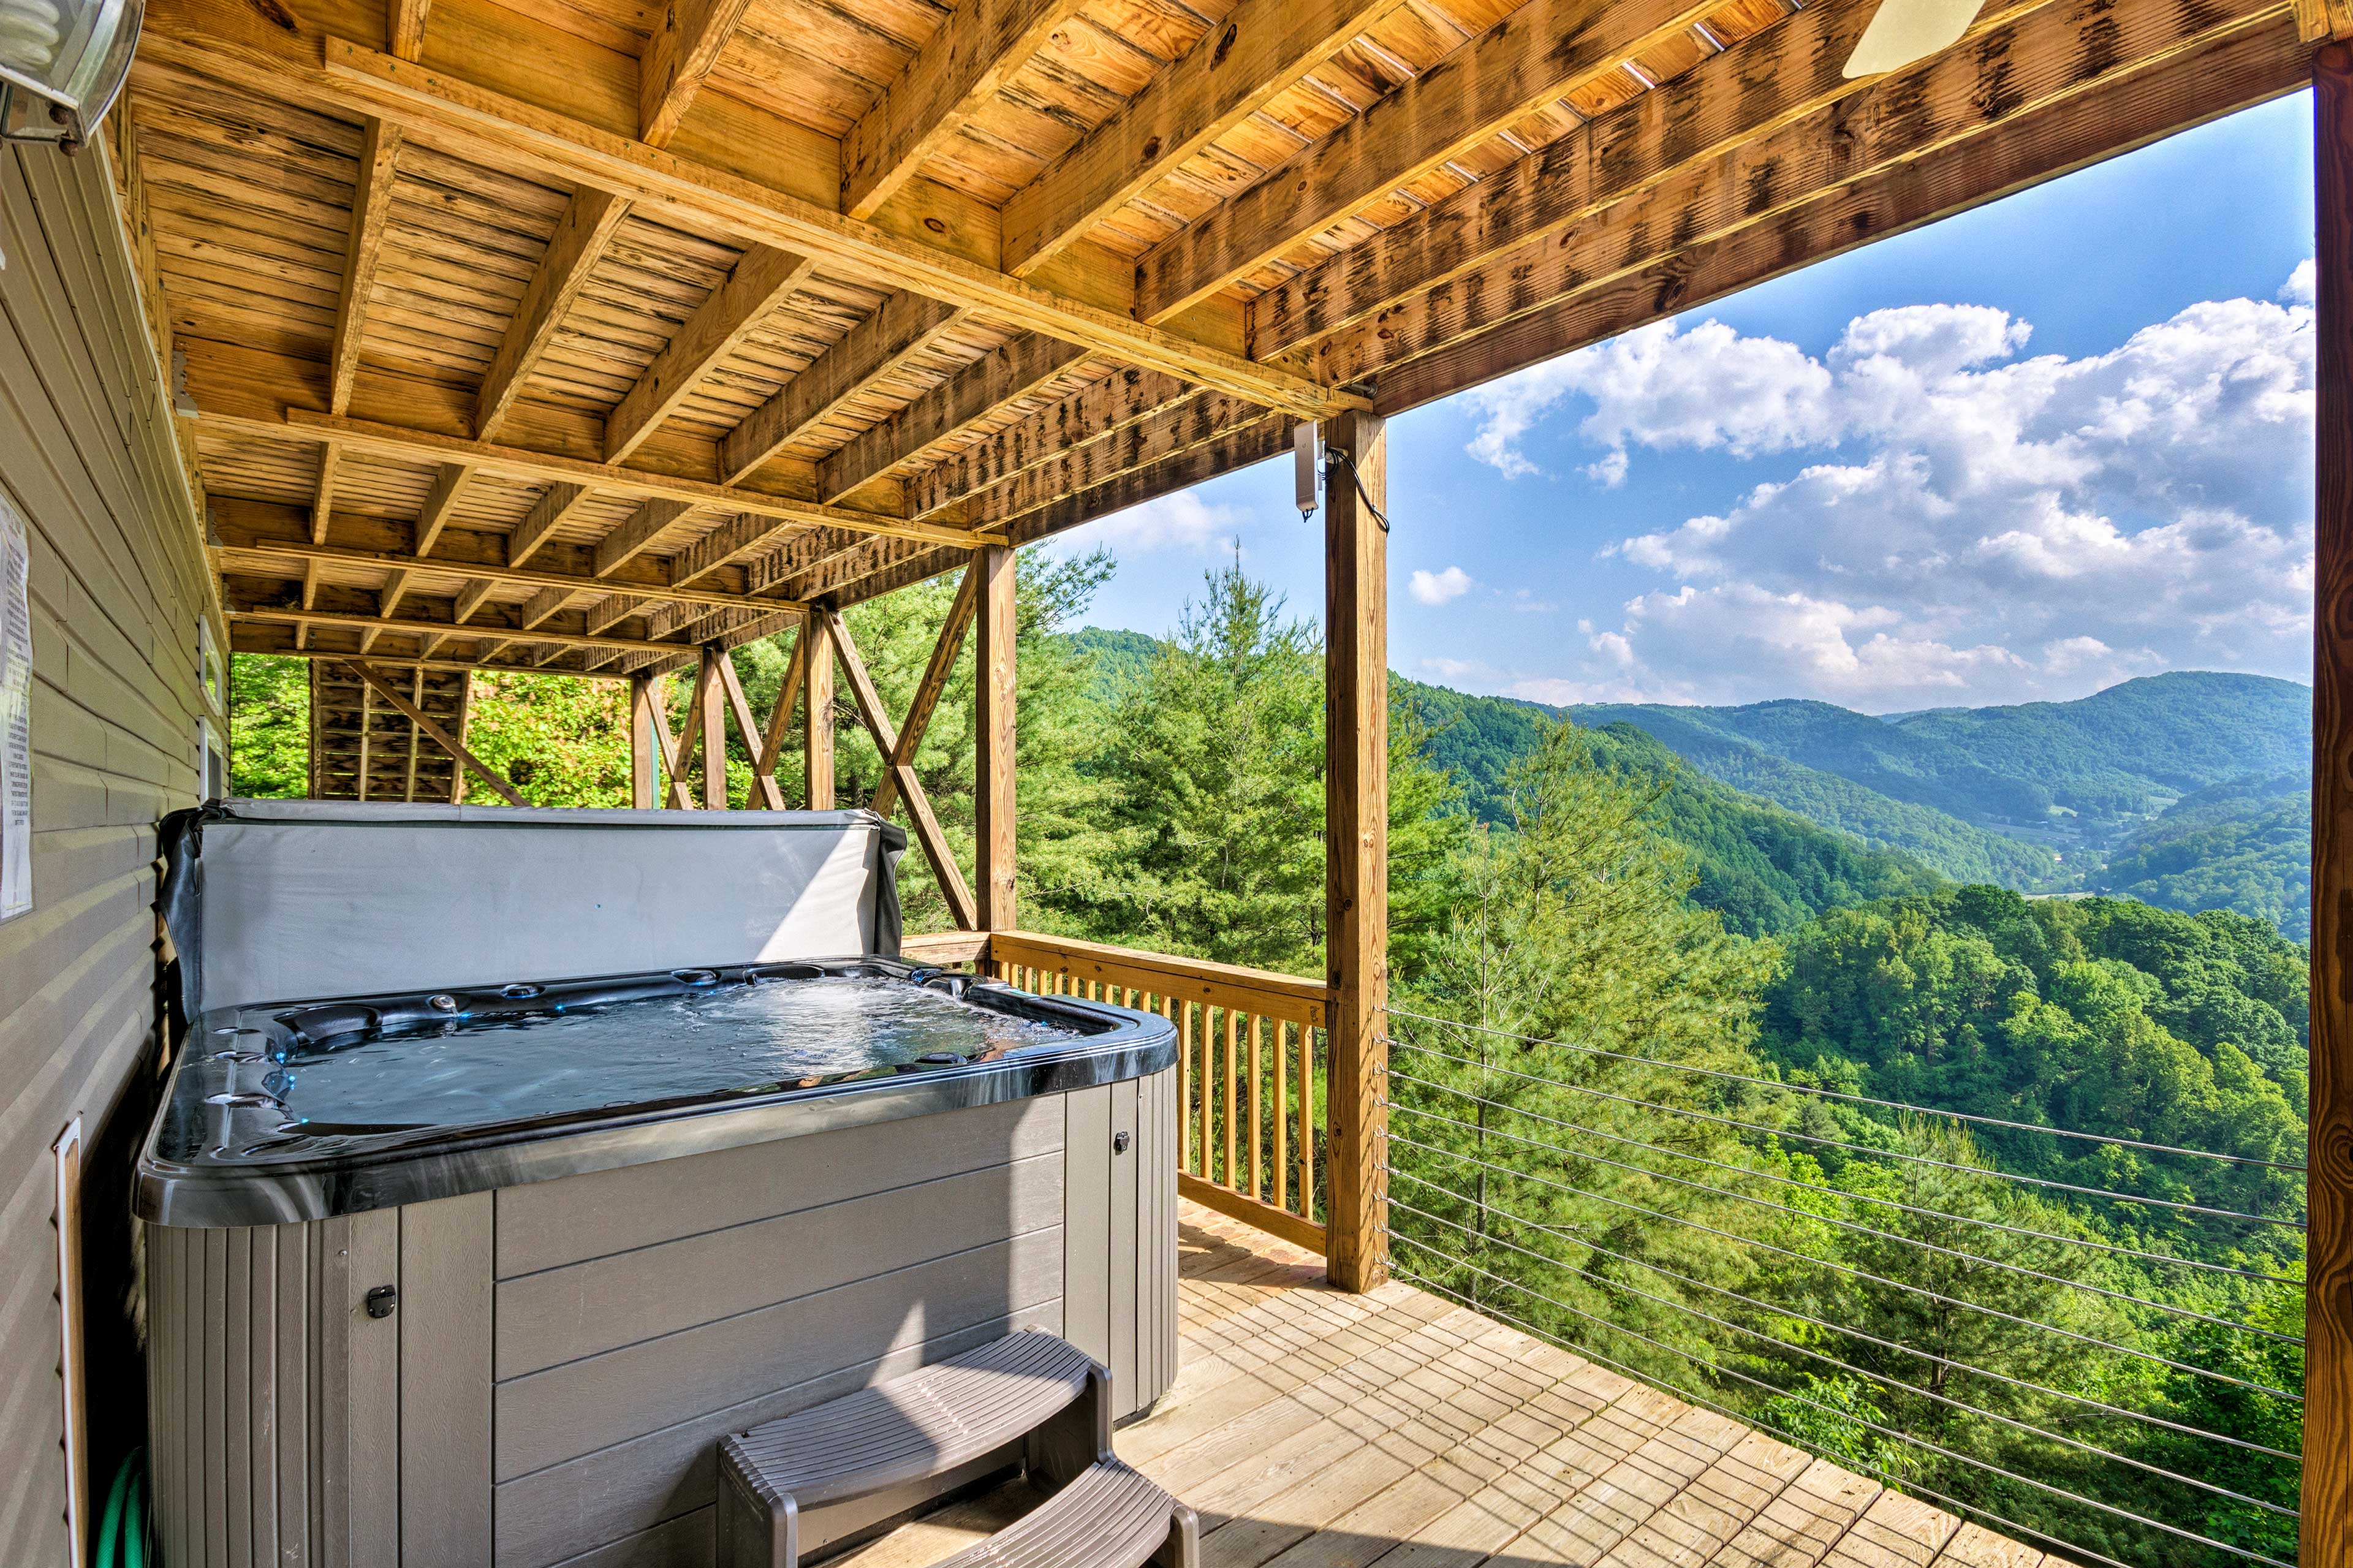 Scenic and secluded, this vacation home serves as your Asheville area sanctuary.